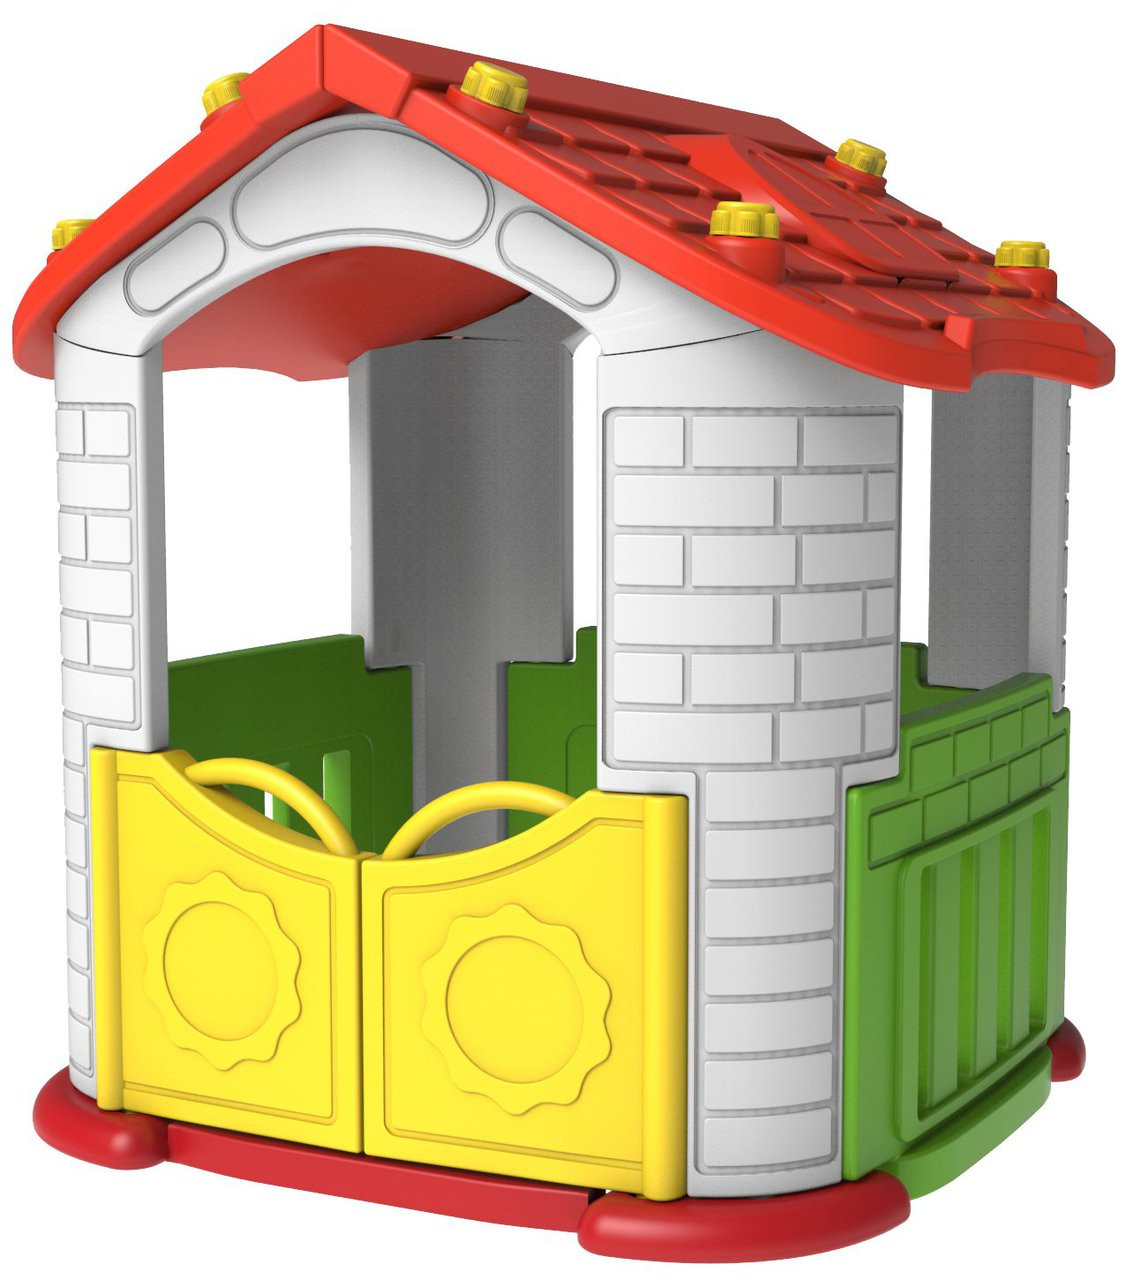 e1aba7deb899 Sunshine Modular Playhouse Kid's Slide and Play Pen (red roof and yellow  doors version). Larger / More Photos